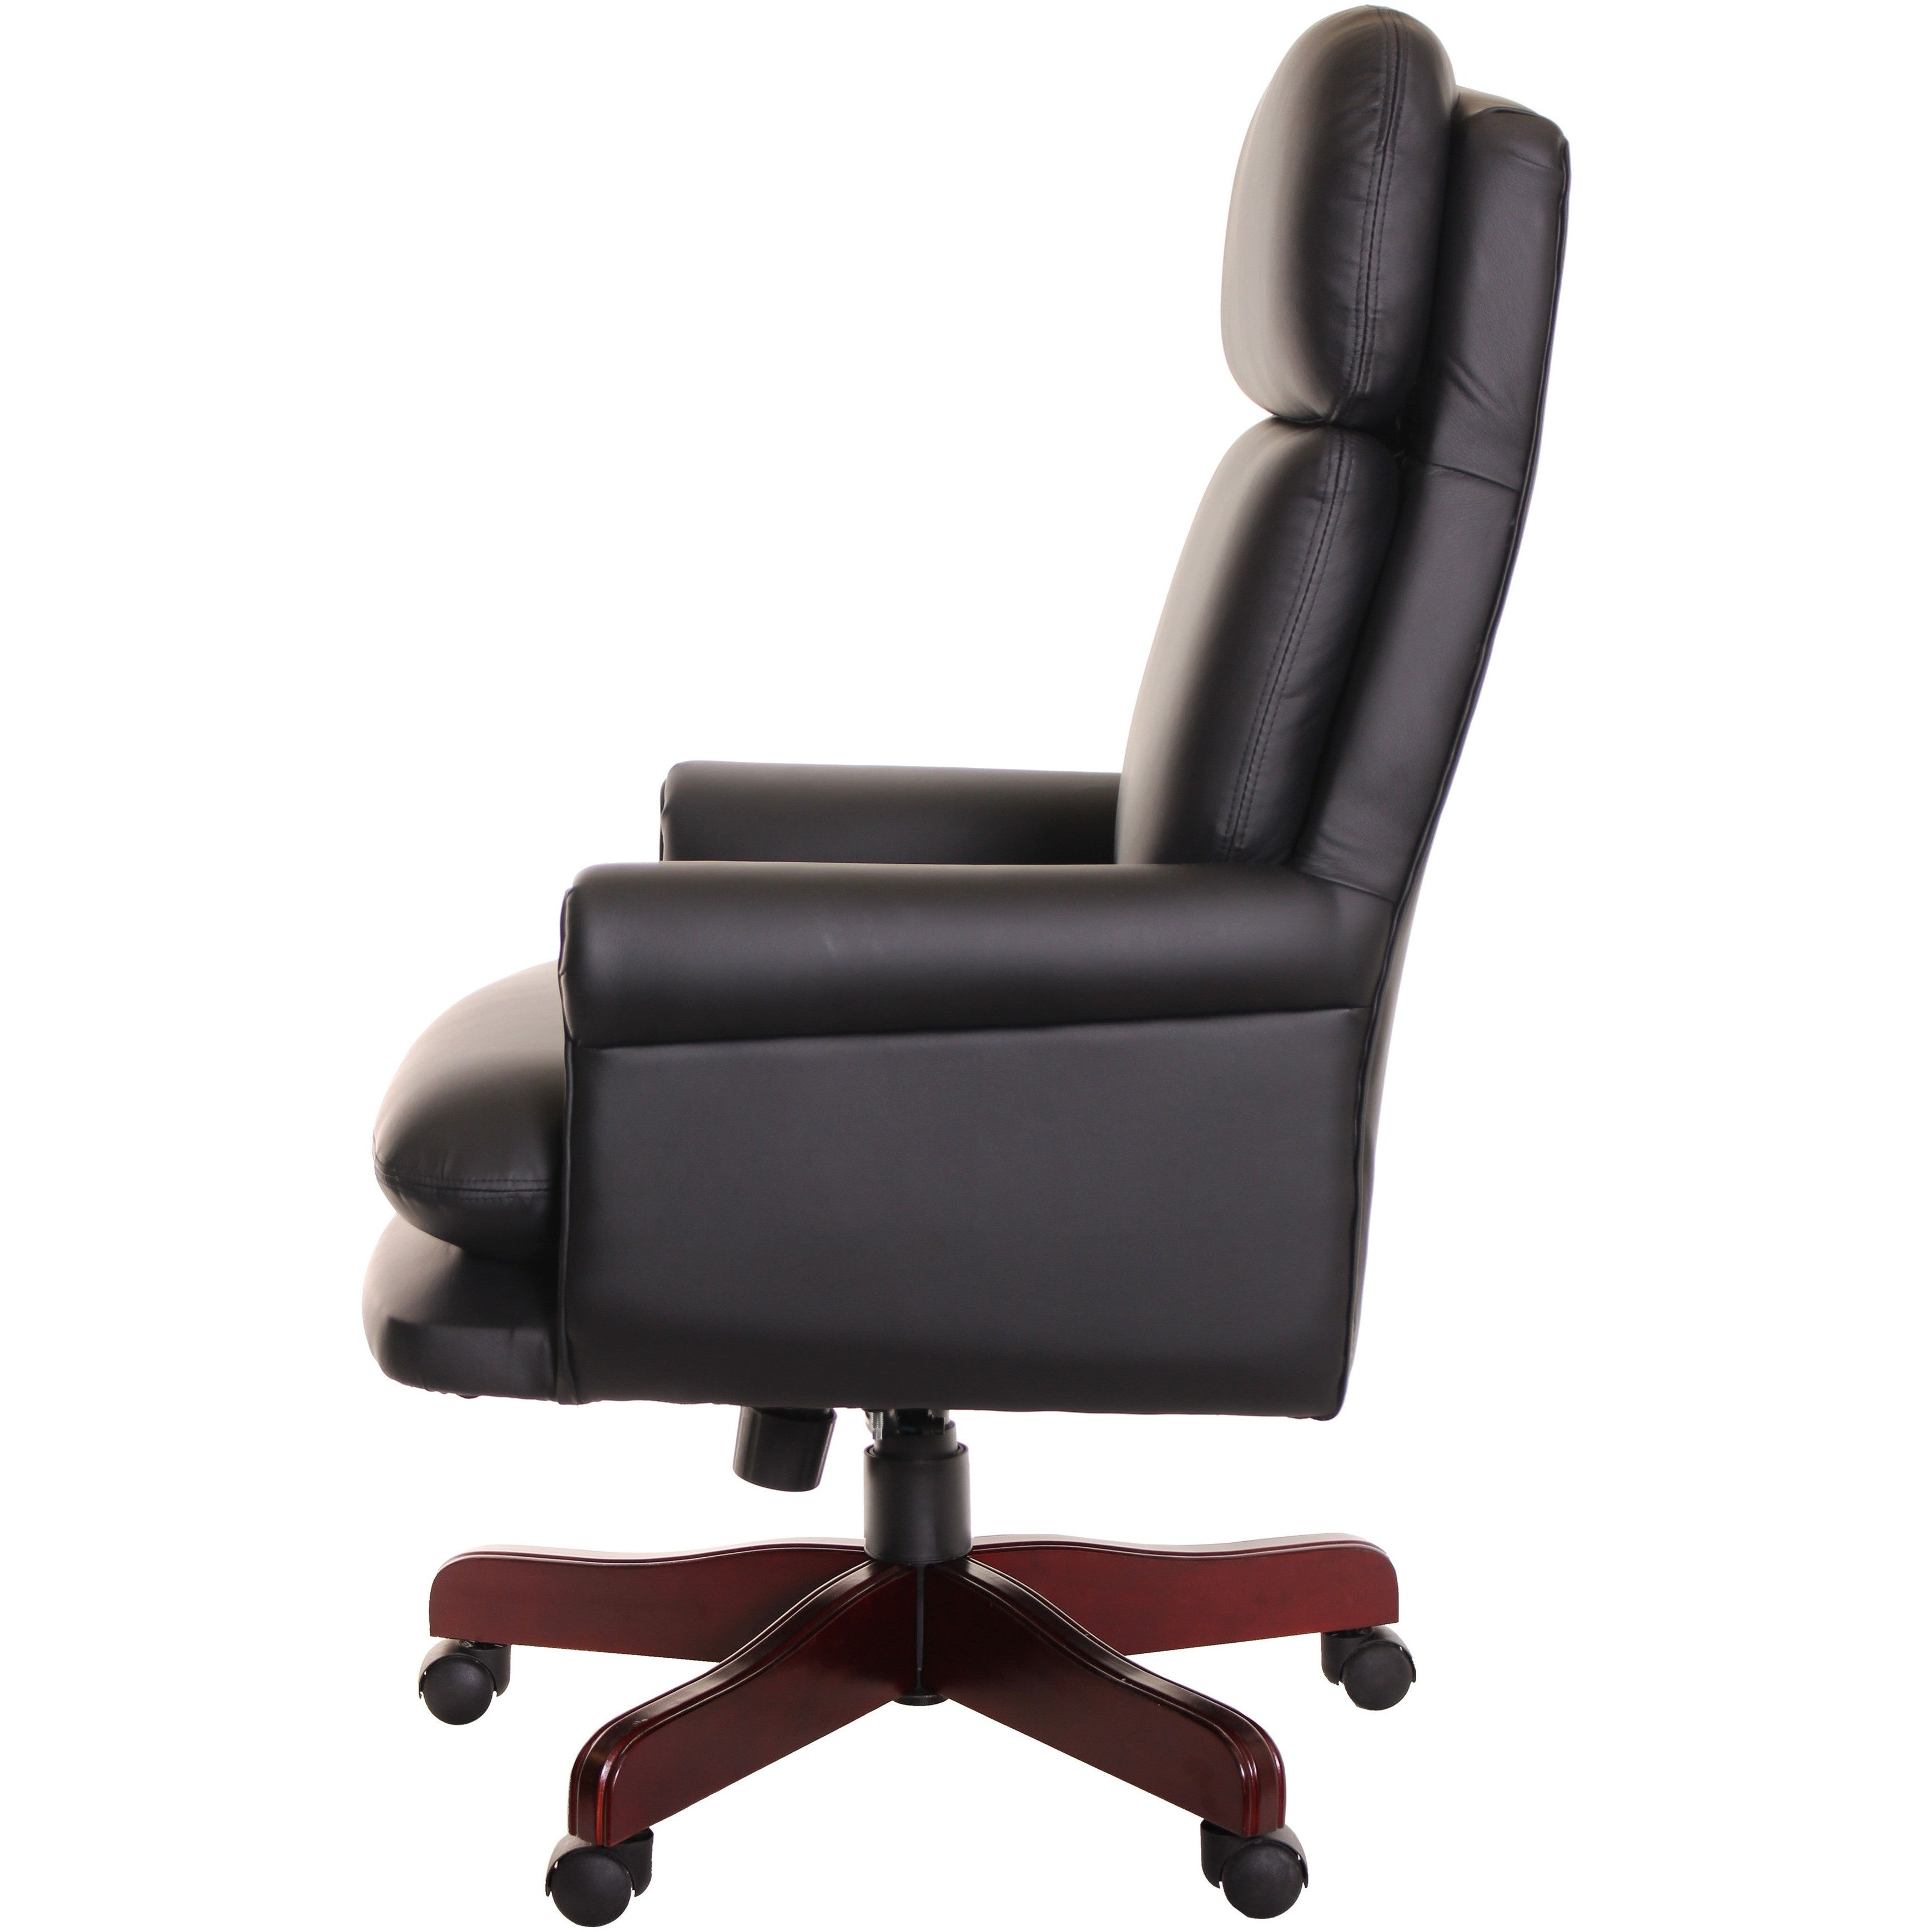 traditional leather office chairs. Traditional Executive Leather Office Chair Back Rake Angle, Black By TimeOffice Chairs